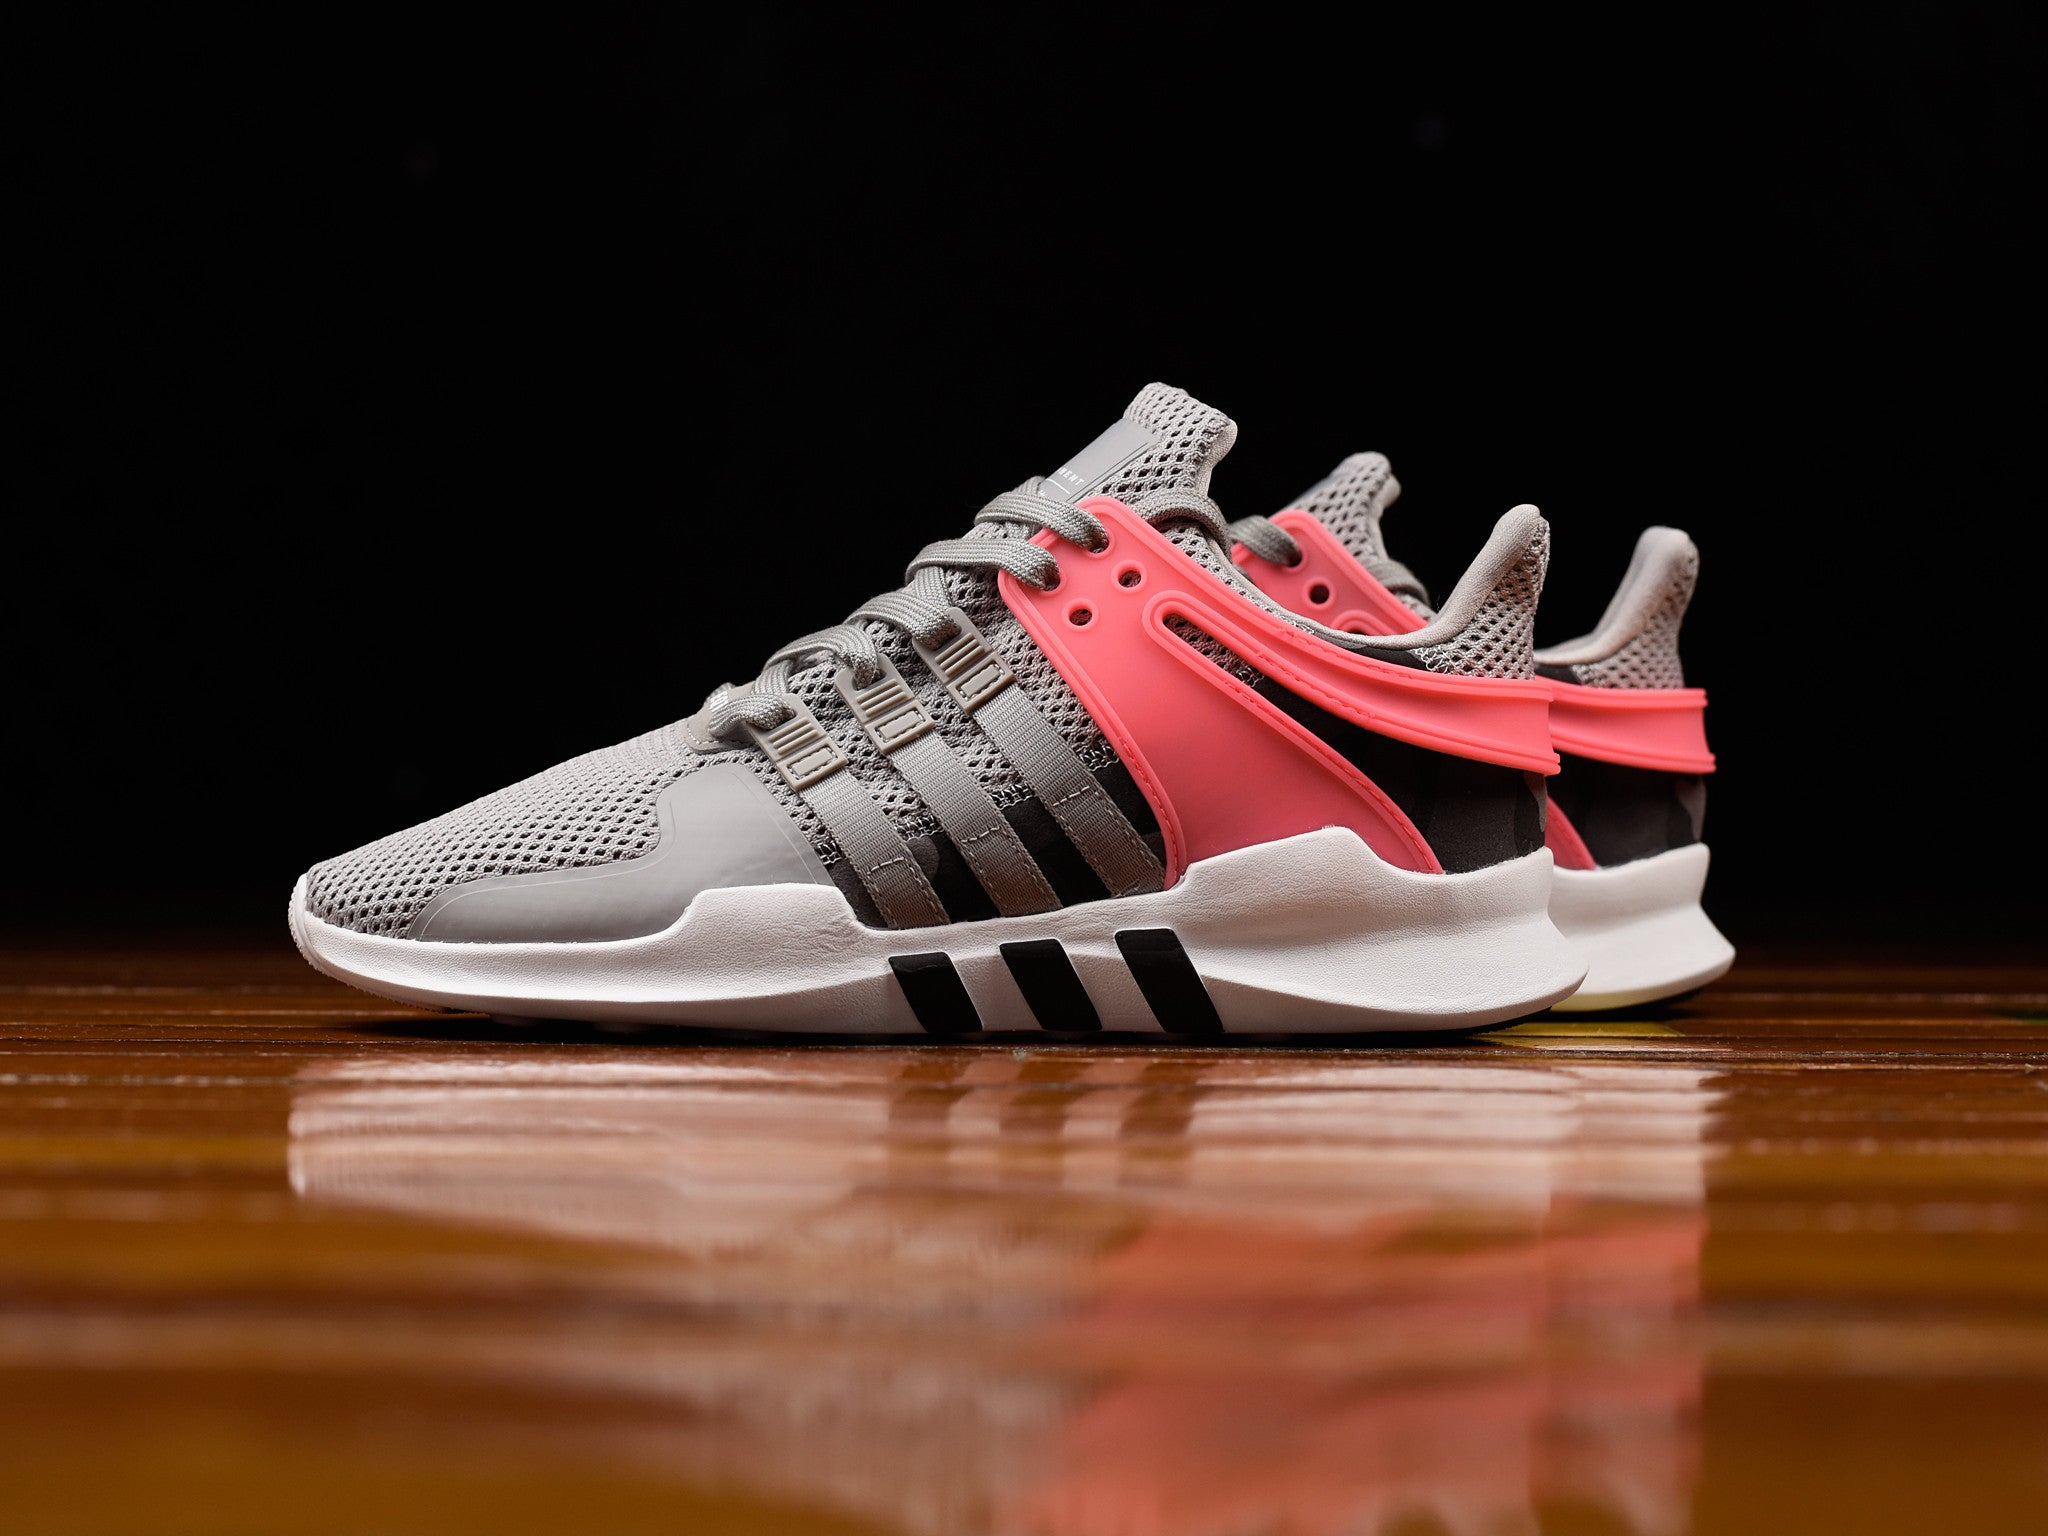 Adidas EQT Support ADV Camo Pink Running Shoes